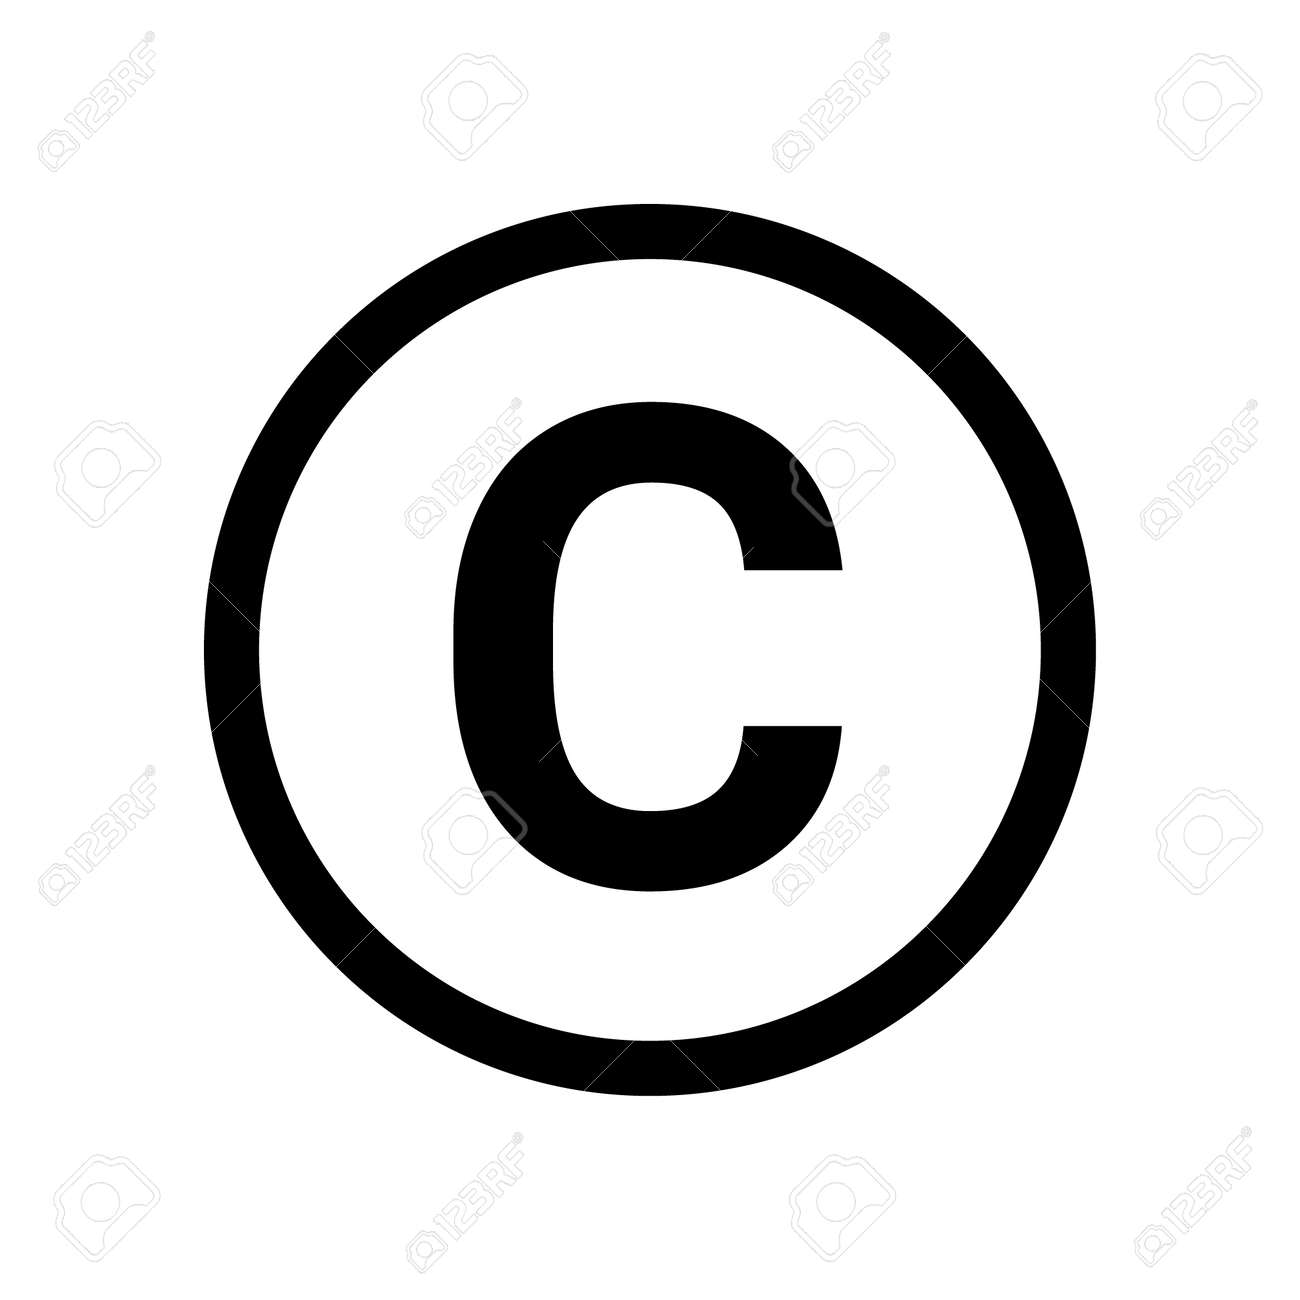 Copyright symbol icon vector. Copyright sign isolated icon trademark - 167669976